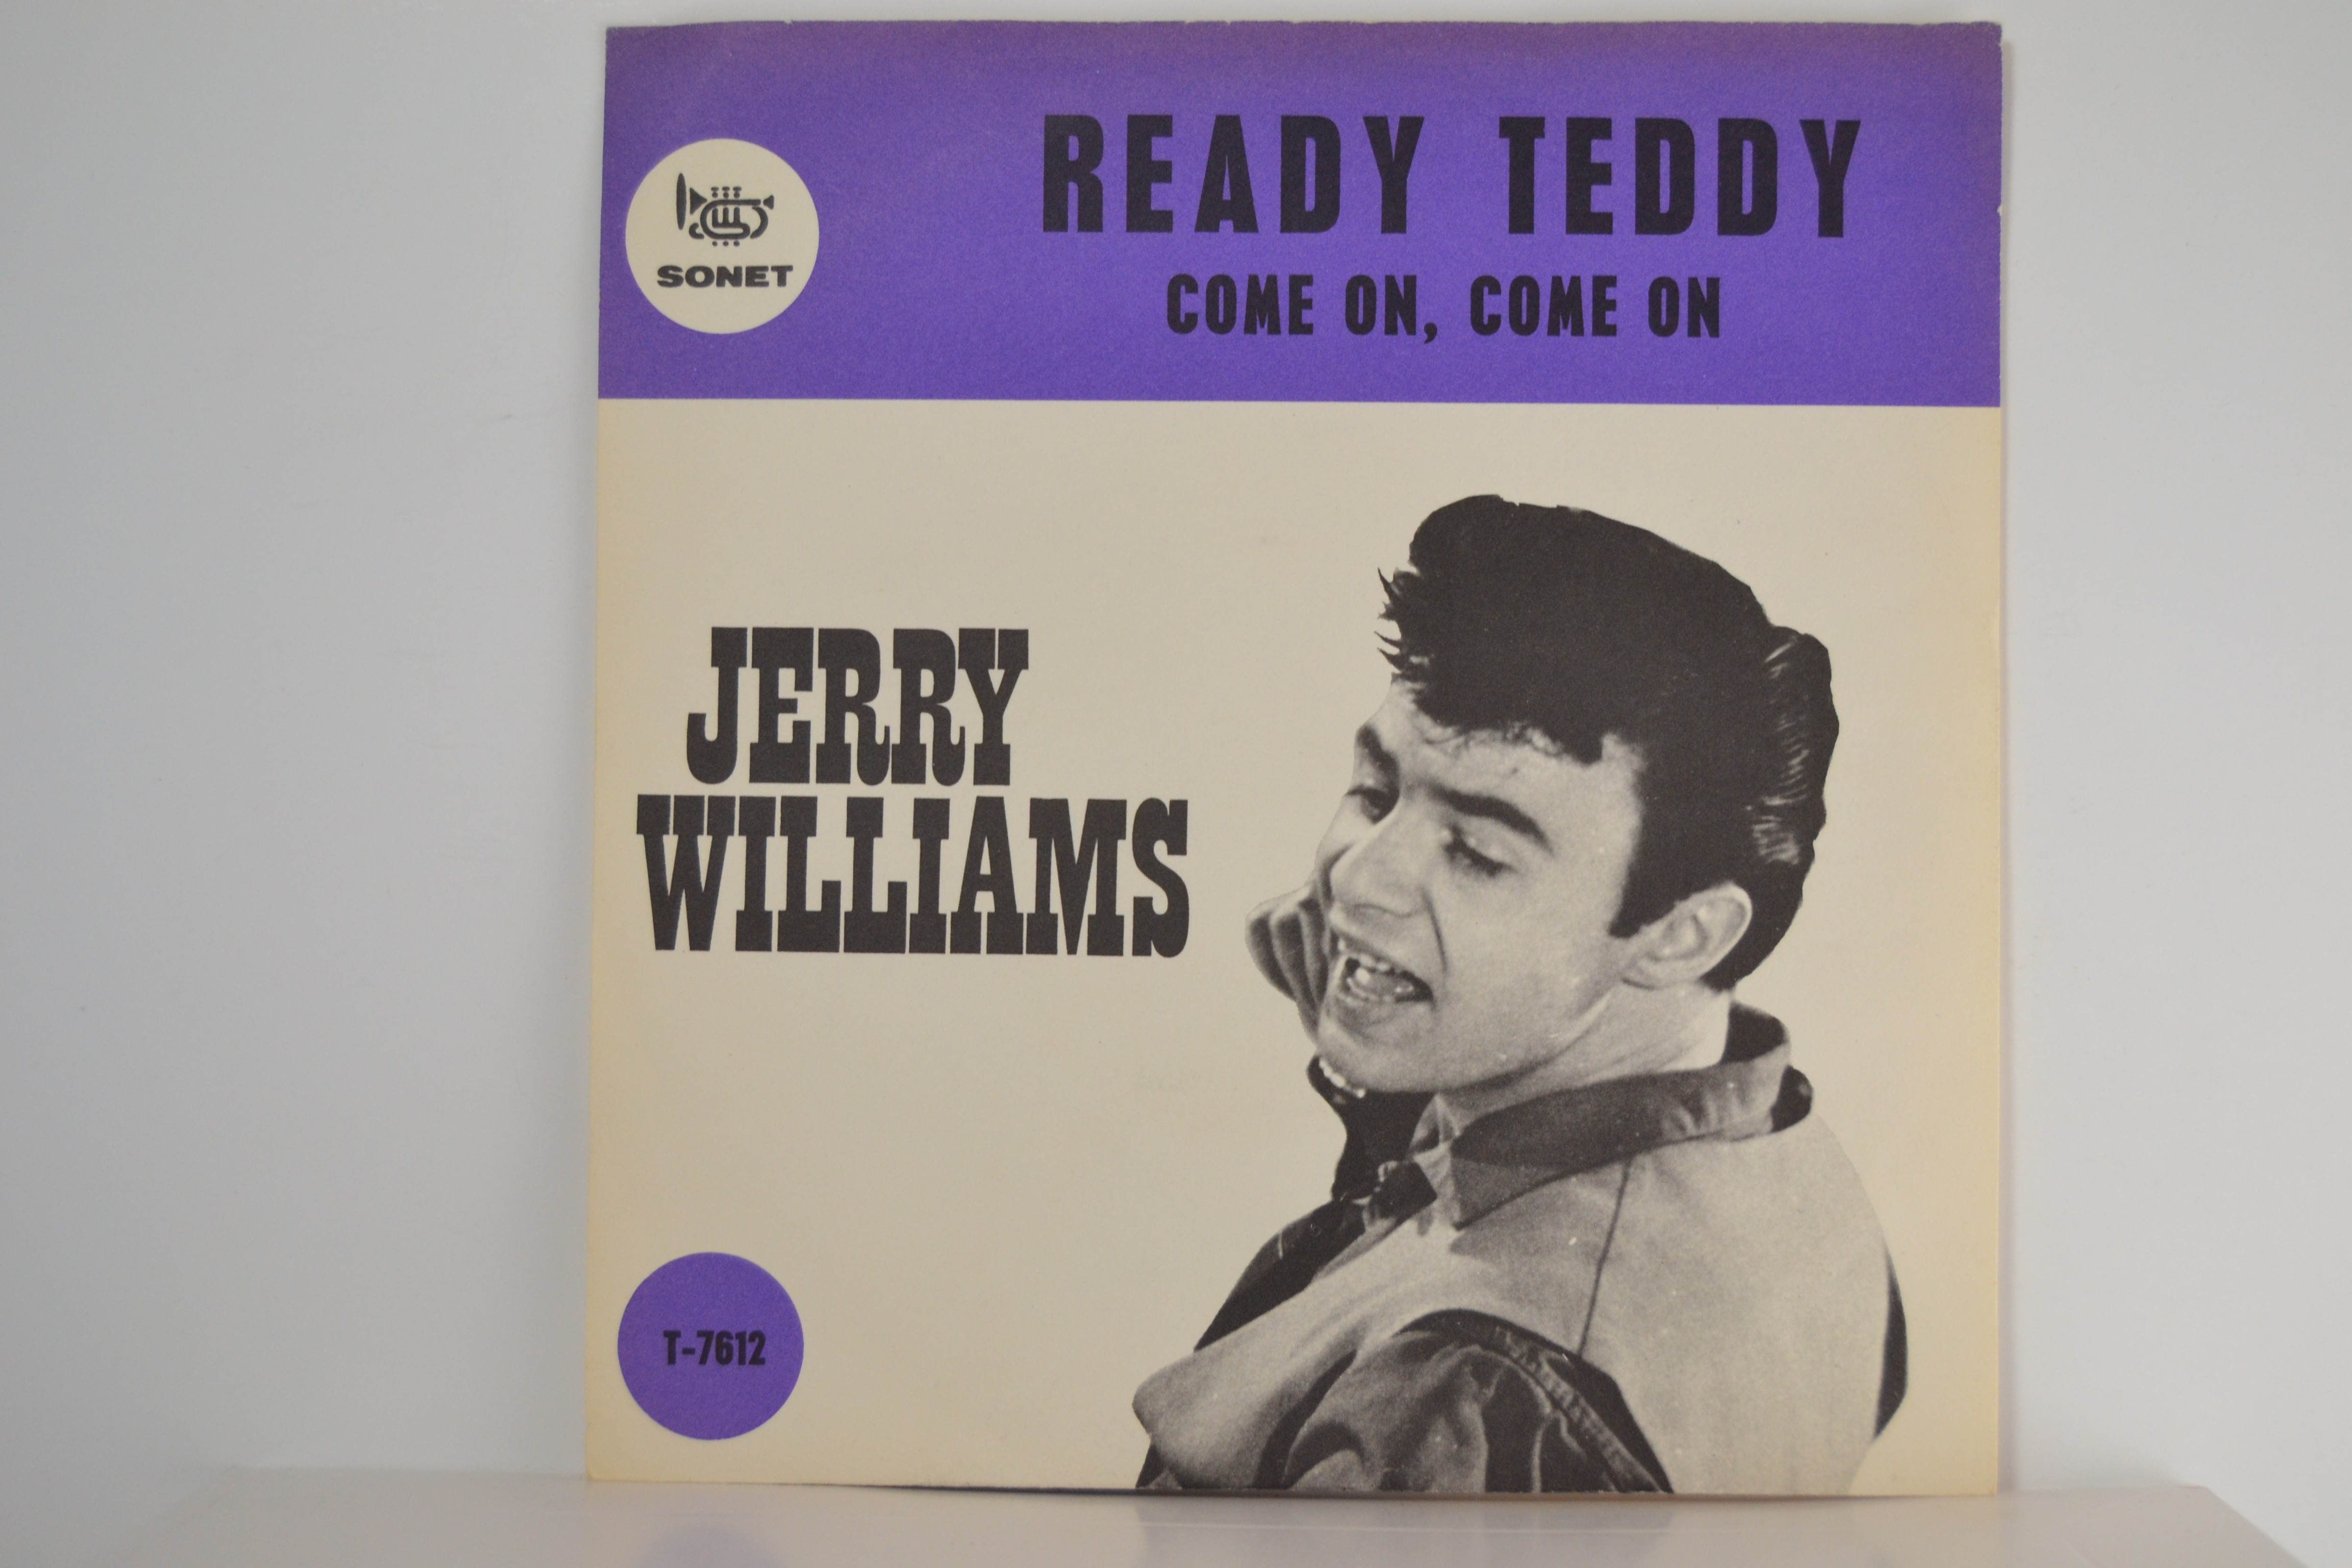 JERRY WIILIAMS : Ready Teddy / Come on, come on